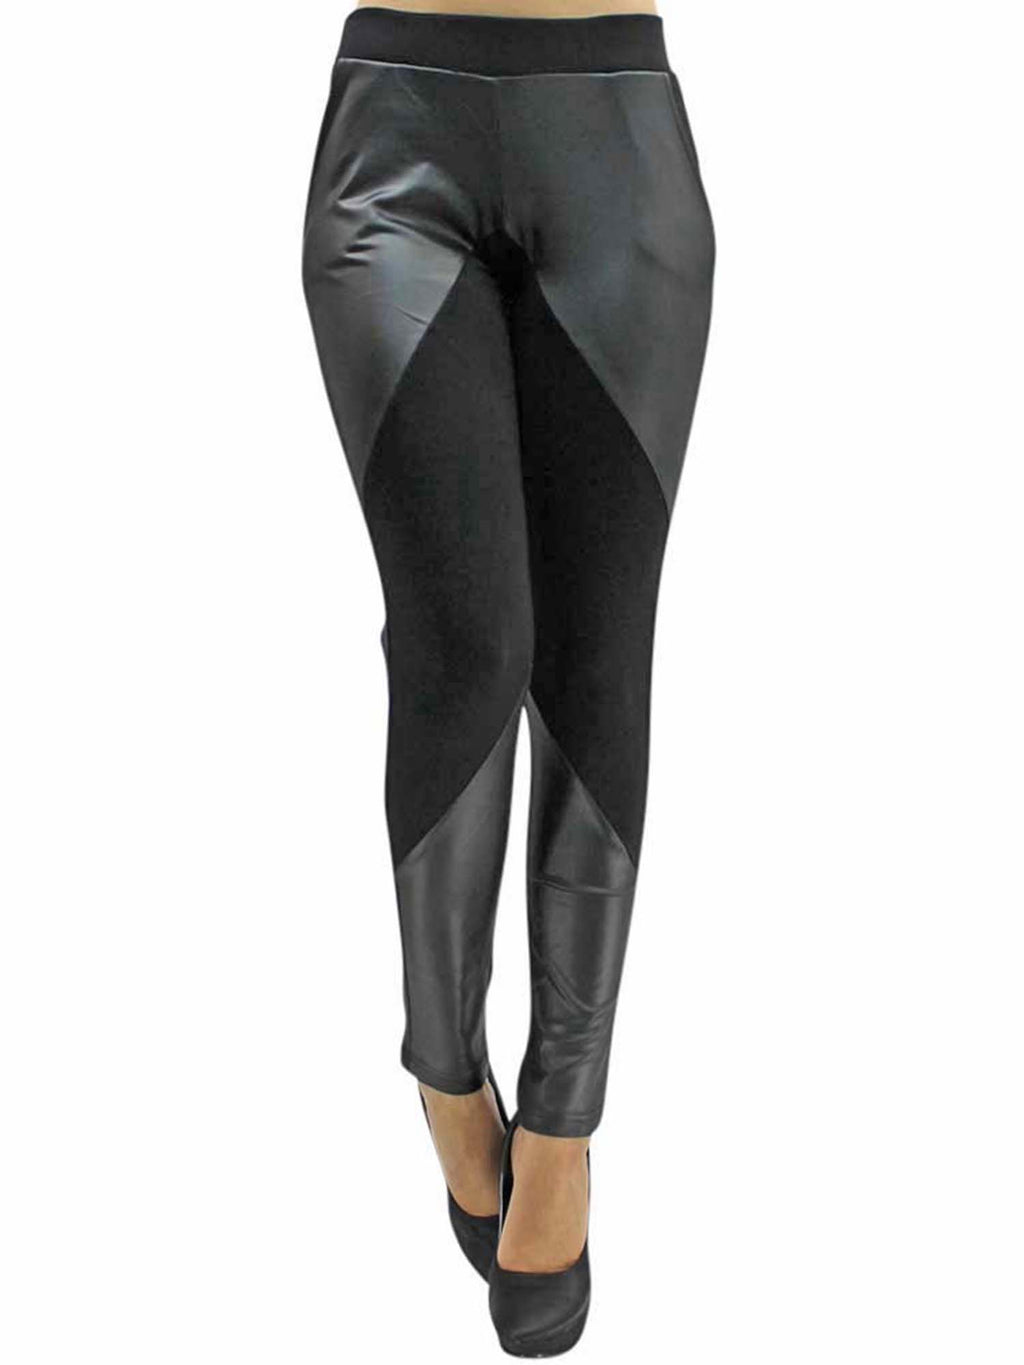 Black Leather And Knit Leggings For Women